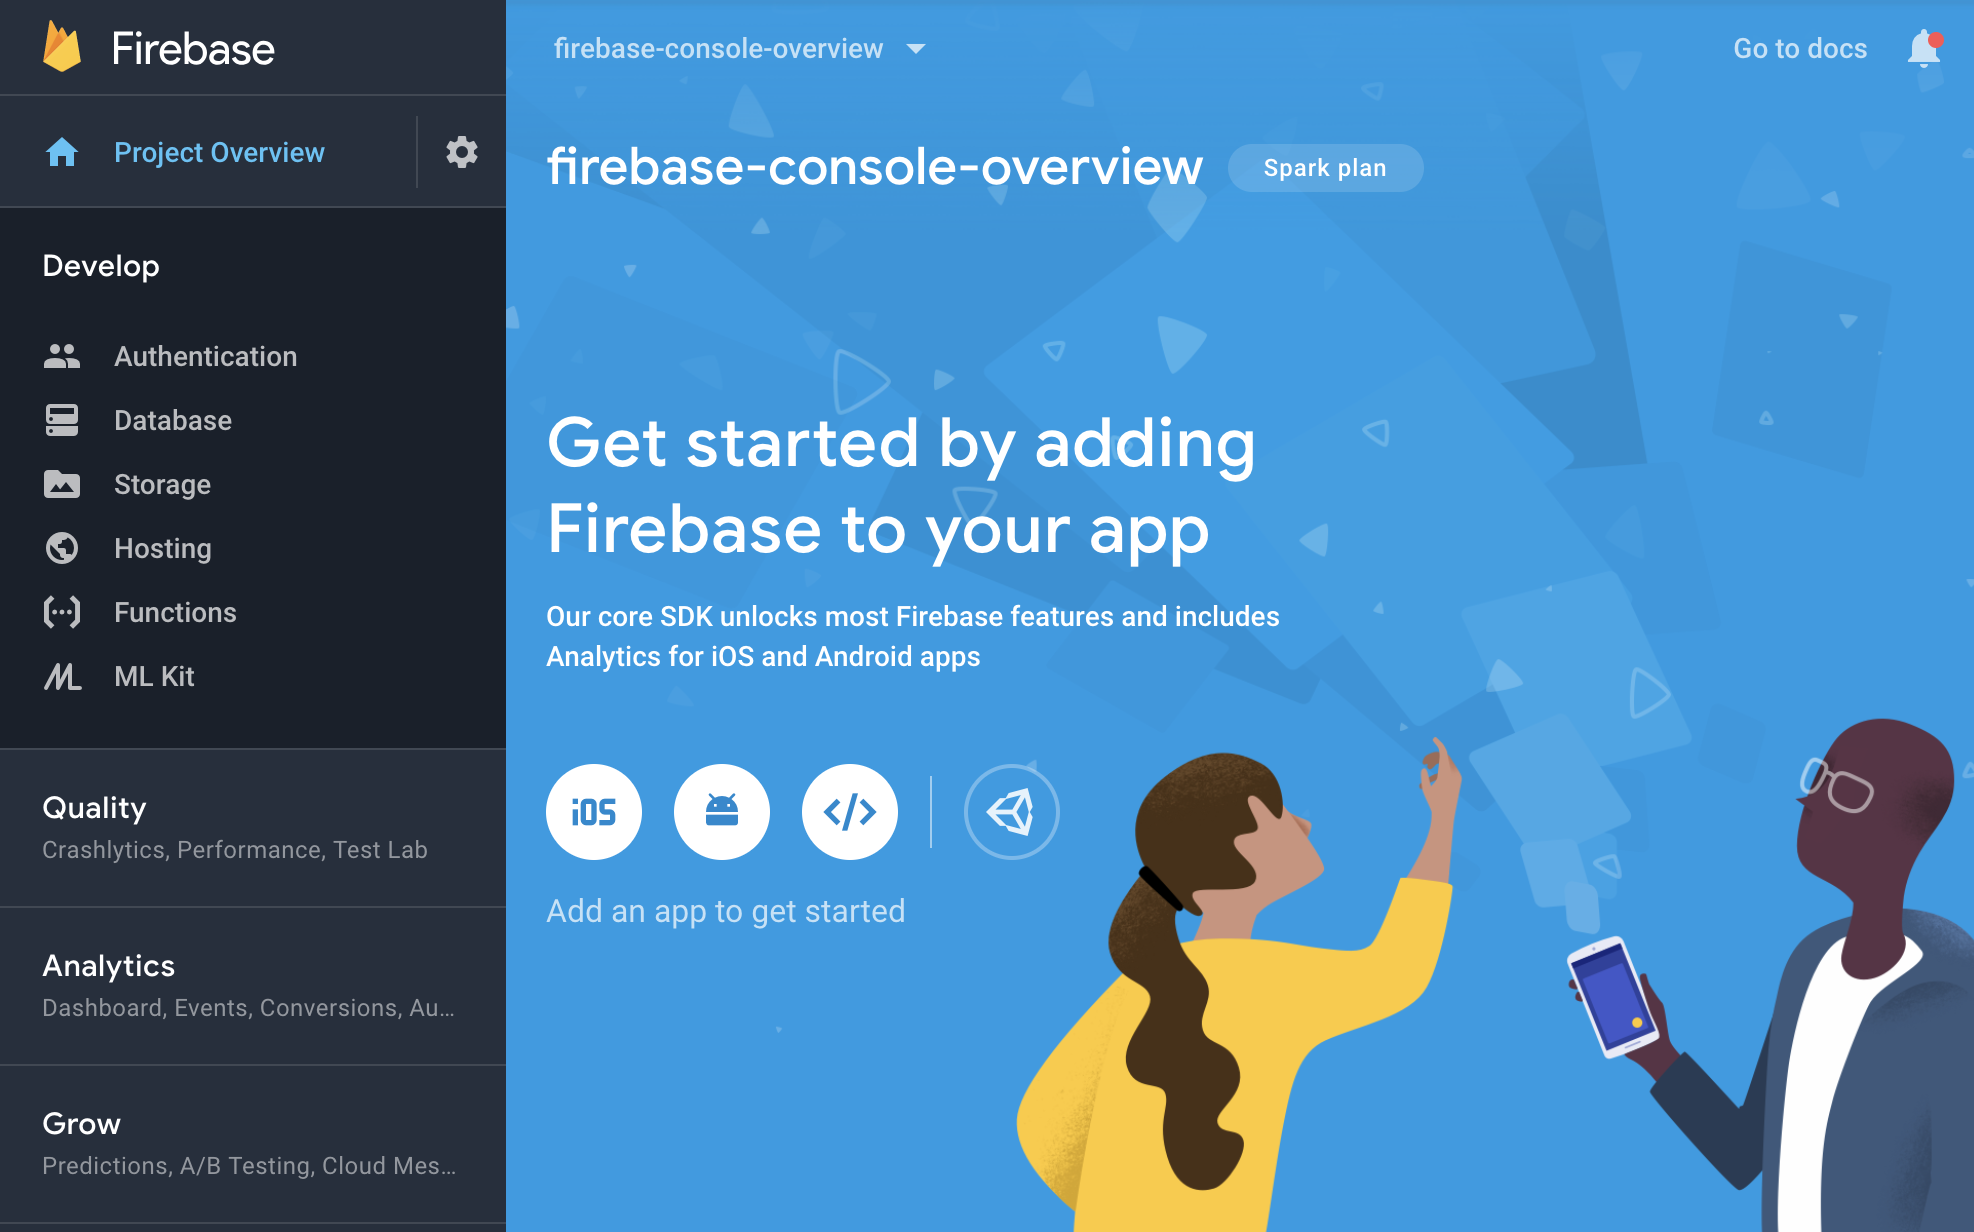 Firebase コンソール - [Project Overview] 画面